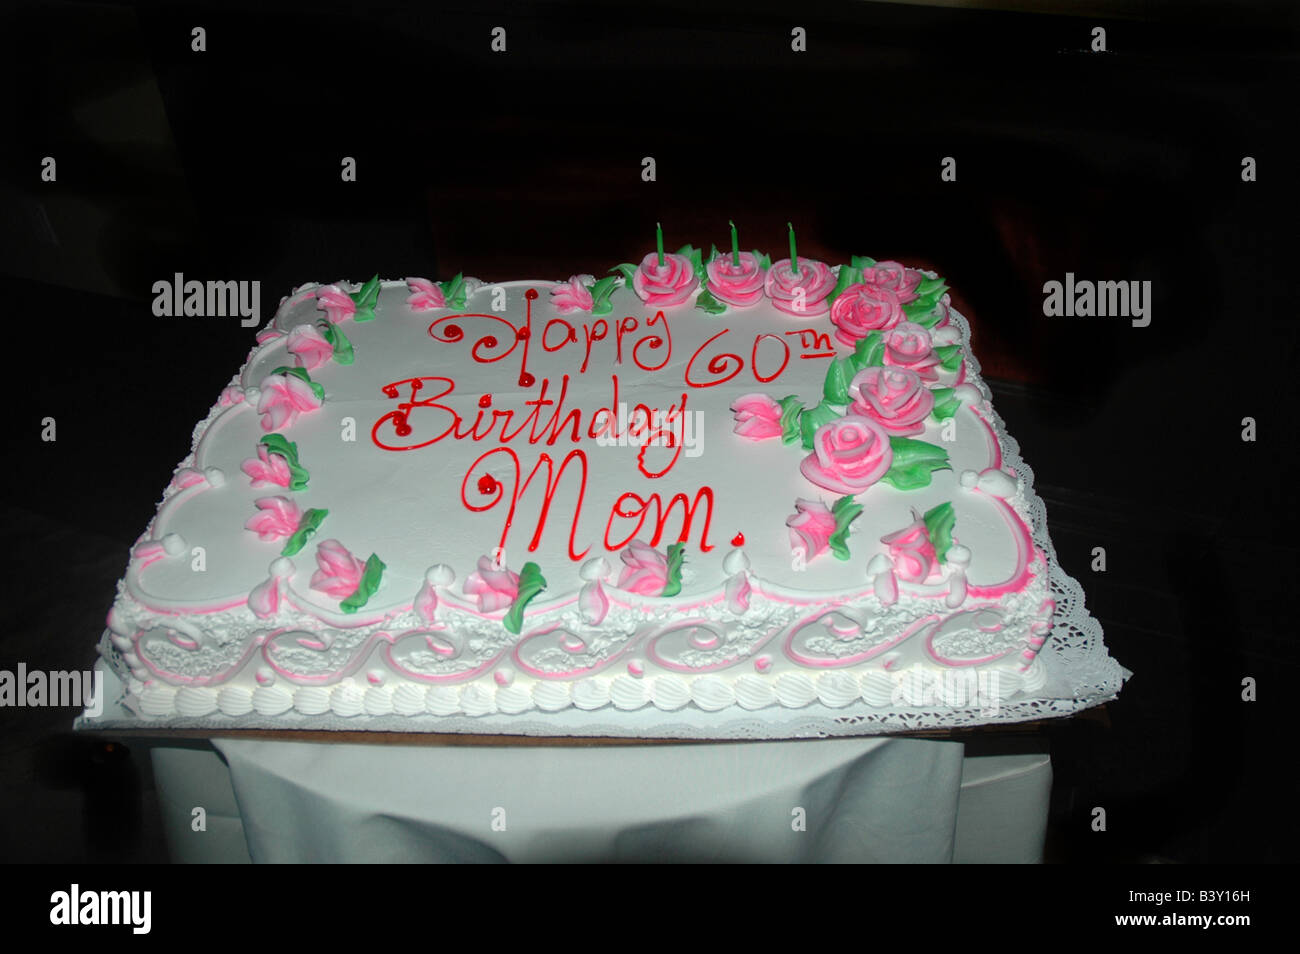 Amazing 60Th Birthday Cake Happy Birthday Mom Stock Photo 19648009 Alamy Personalised Birthday Cards Veneteletsinfo